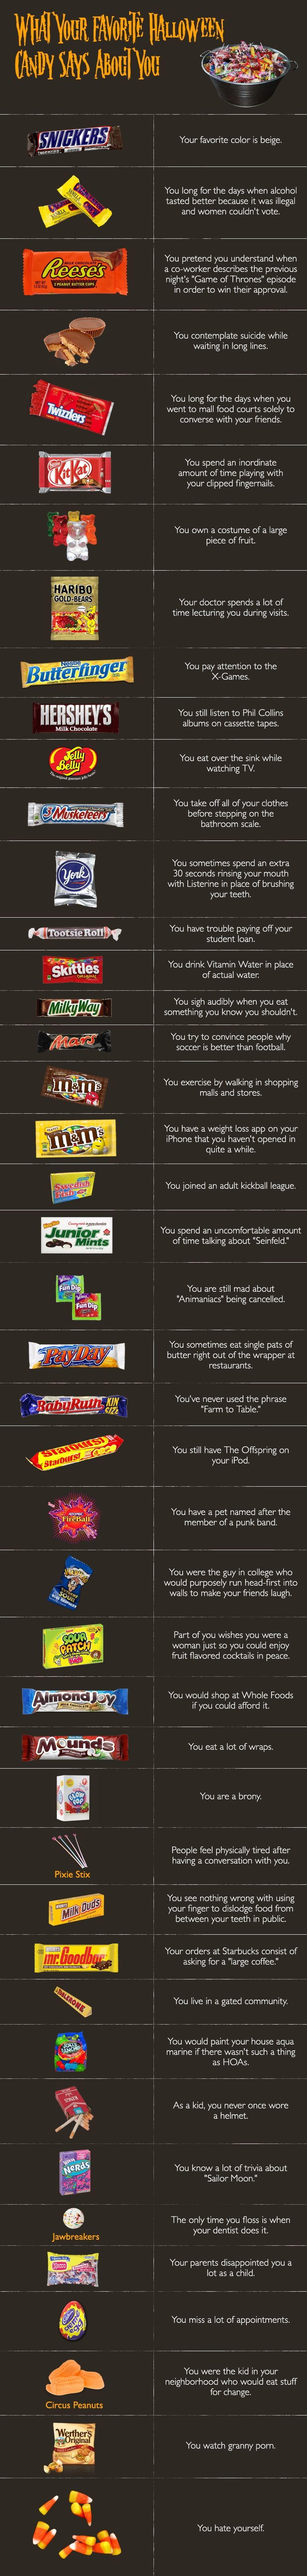 What Your Favorite Candy Says About Your Personality